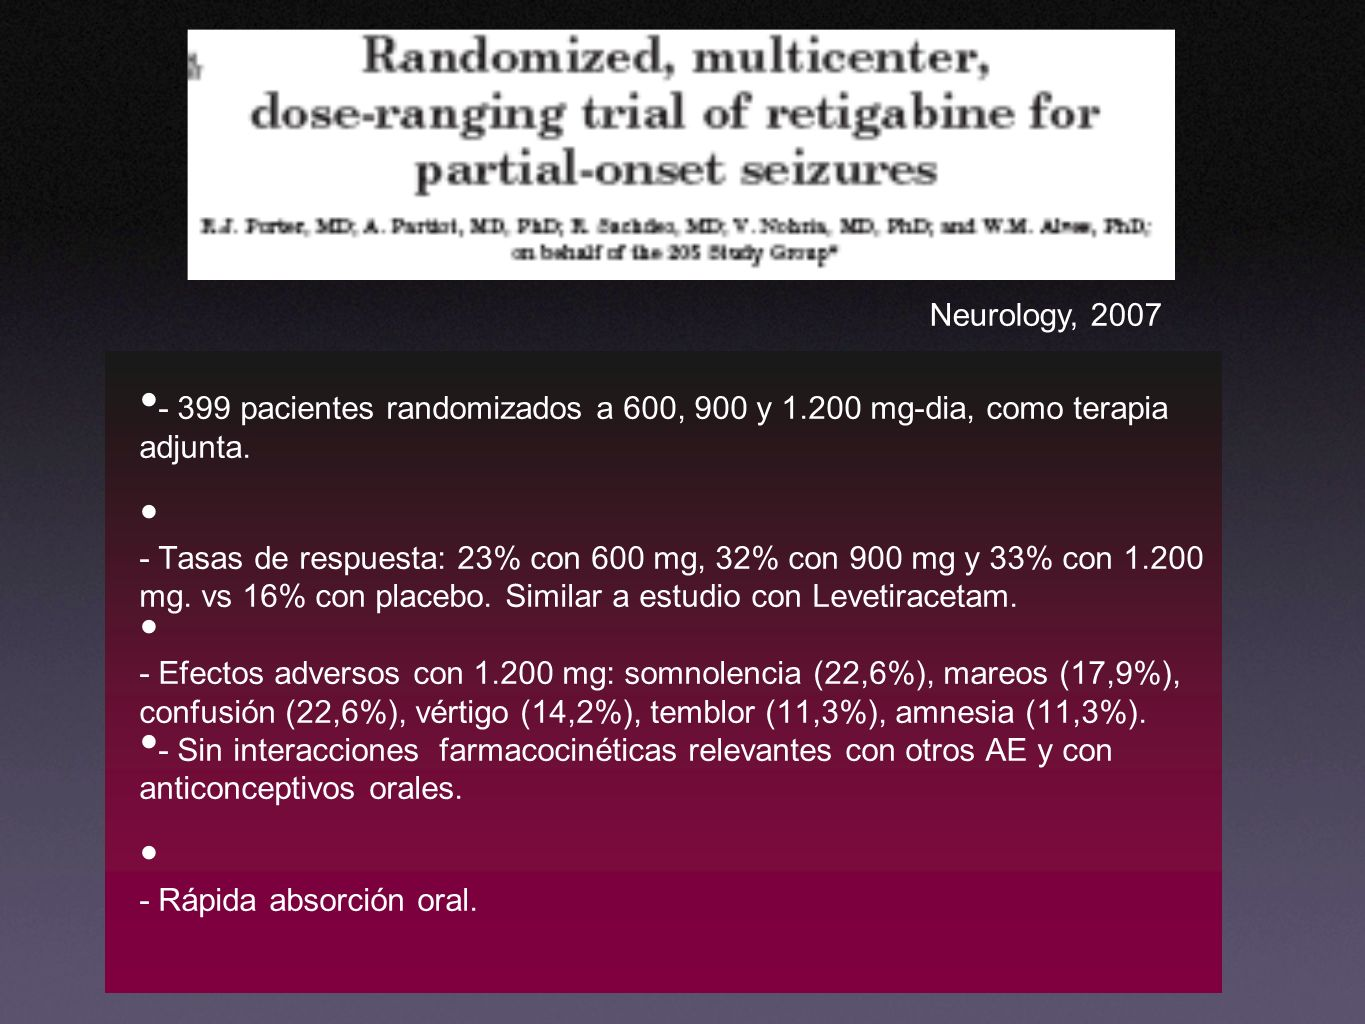 Neurology, 2007 - 399 pacientes randomizados a 600, 900 y 1.200 mg-dia, como terapia adjunta.